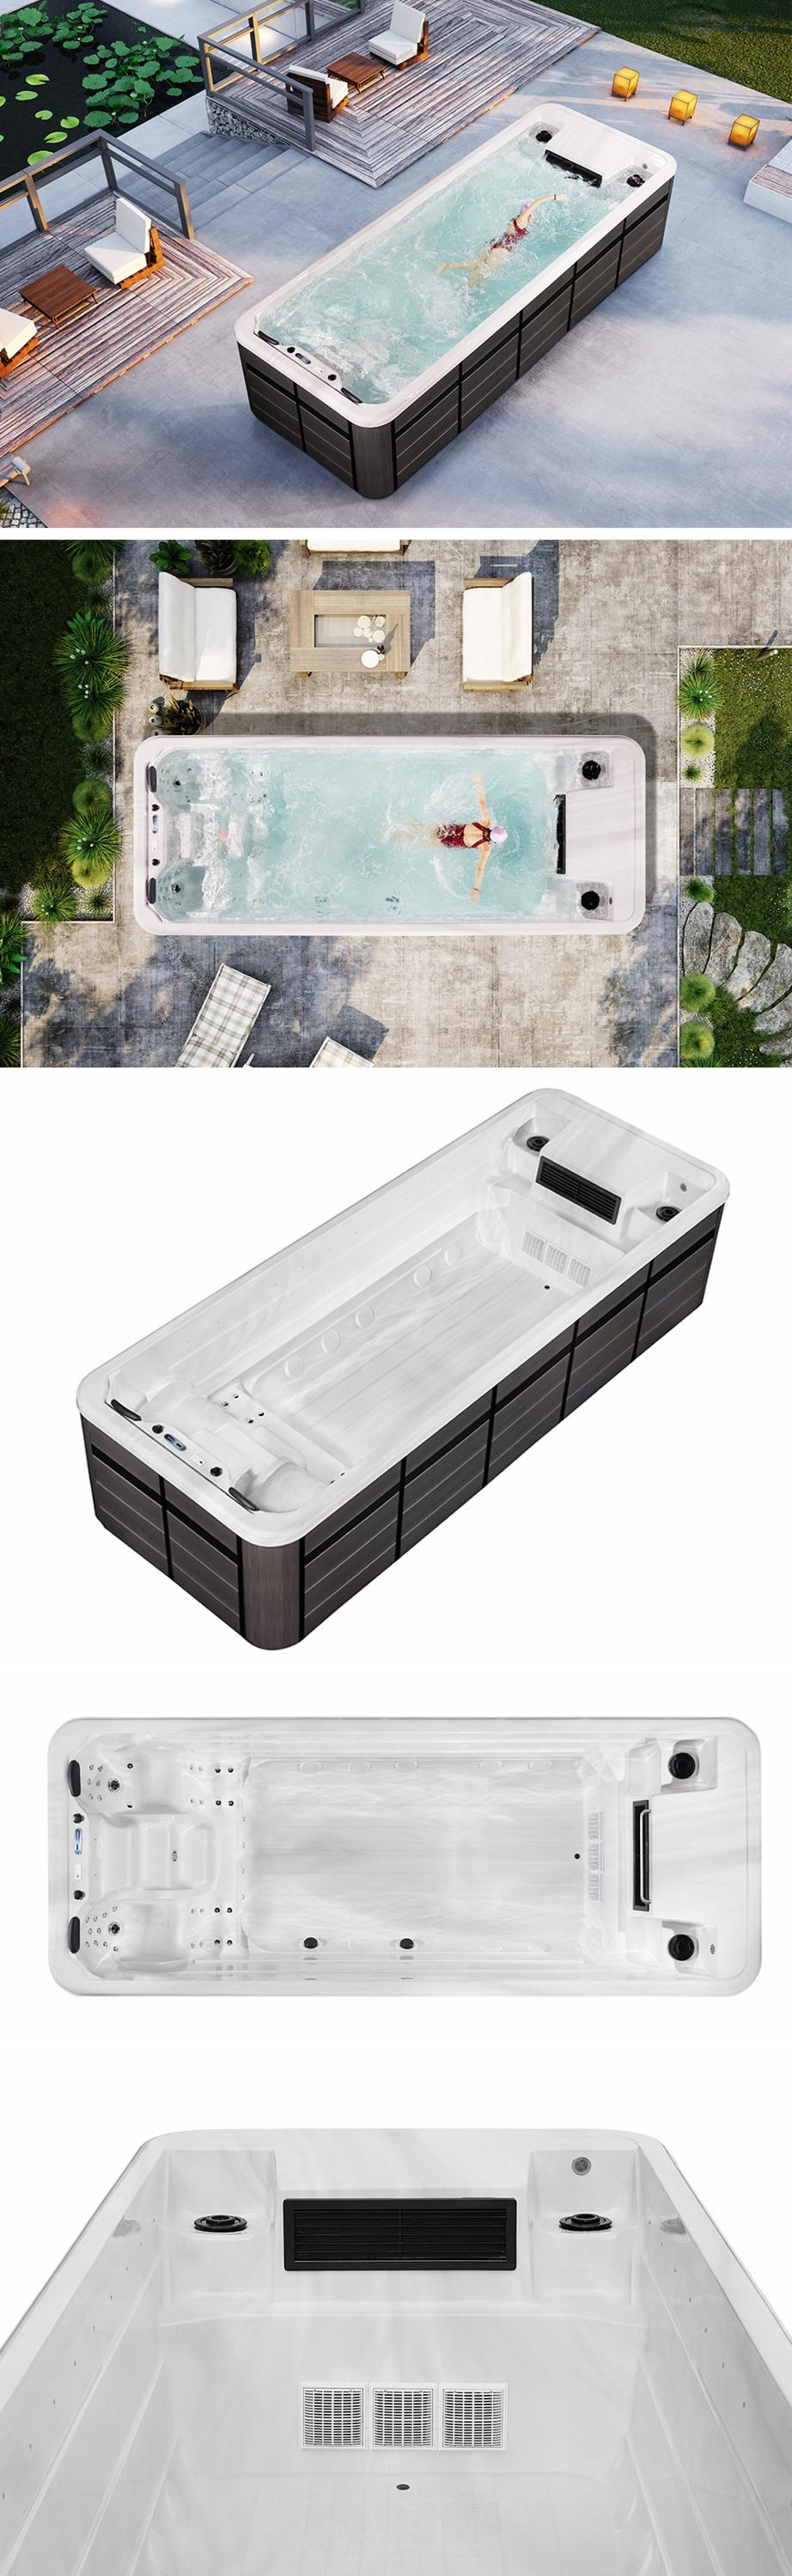 outdoor endless pool spa/ clear acrylic swimming pool hot tub combo